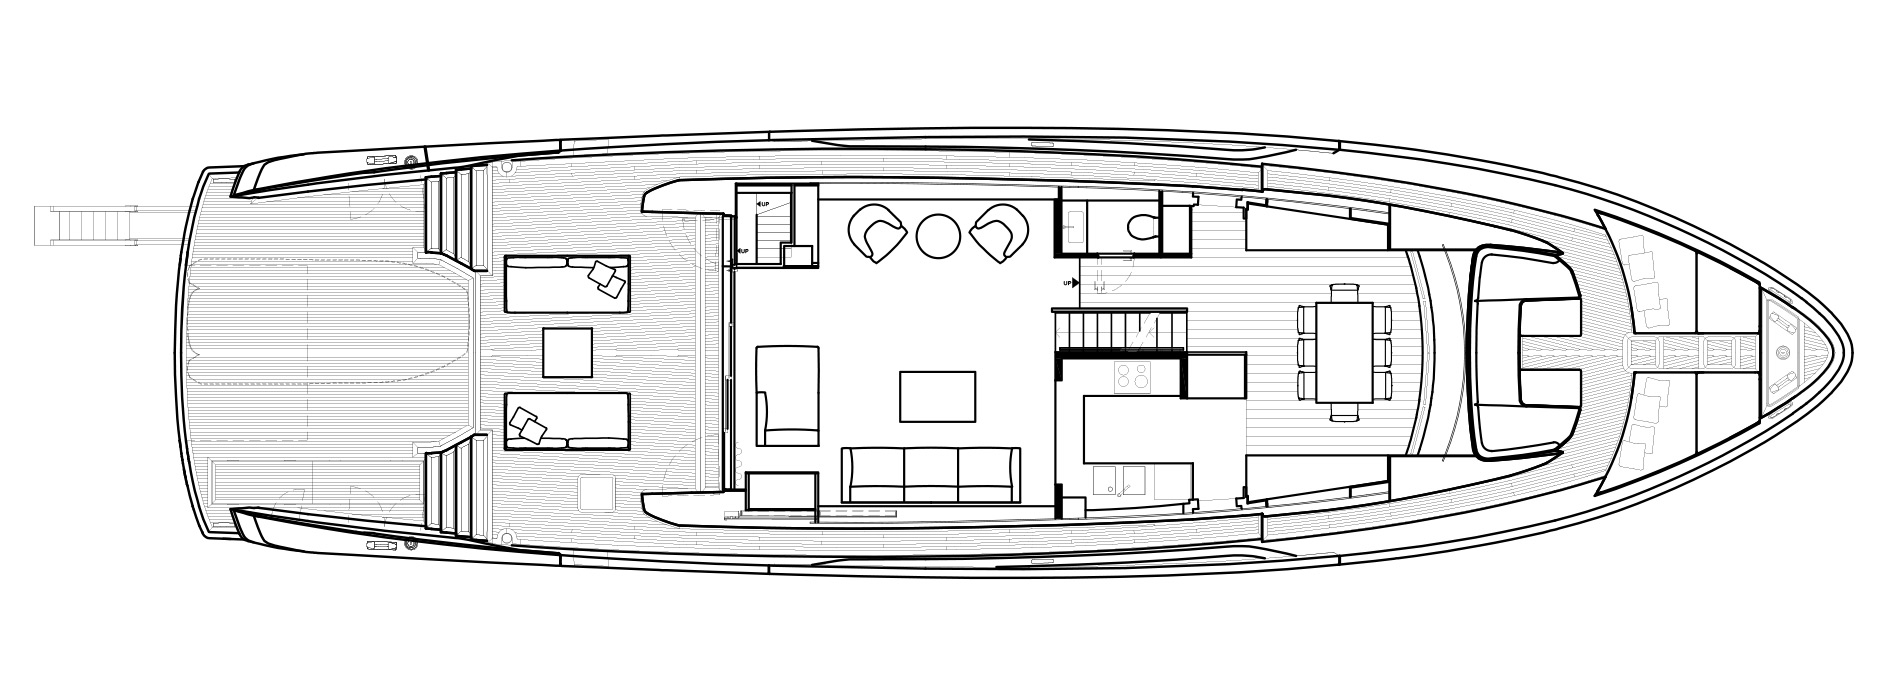 Sanlorenzo Yachts SX88 主甲板 Versione A Open Galley